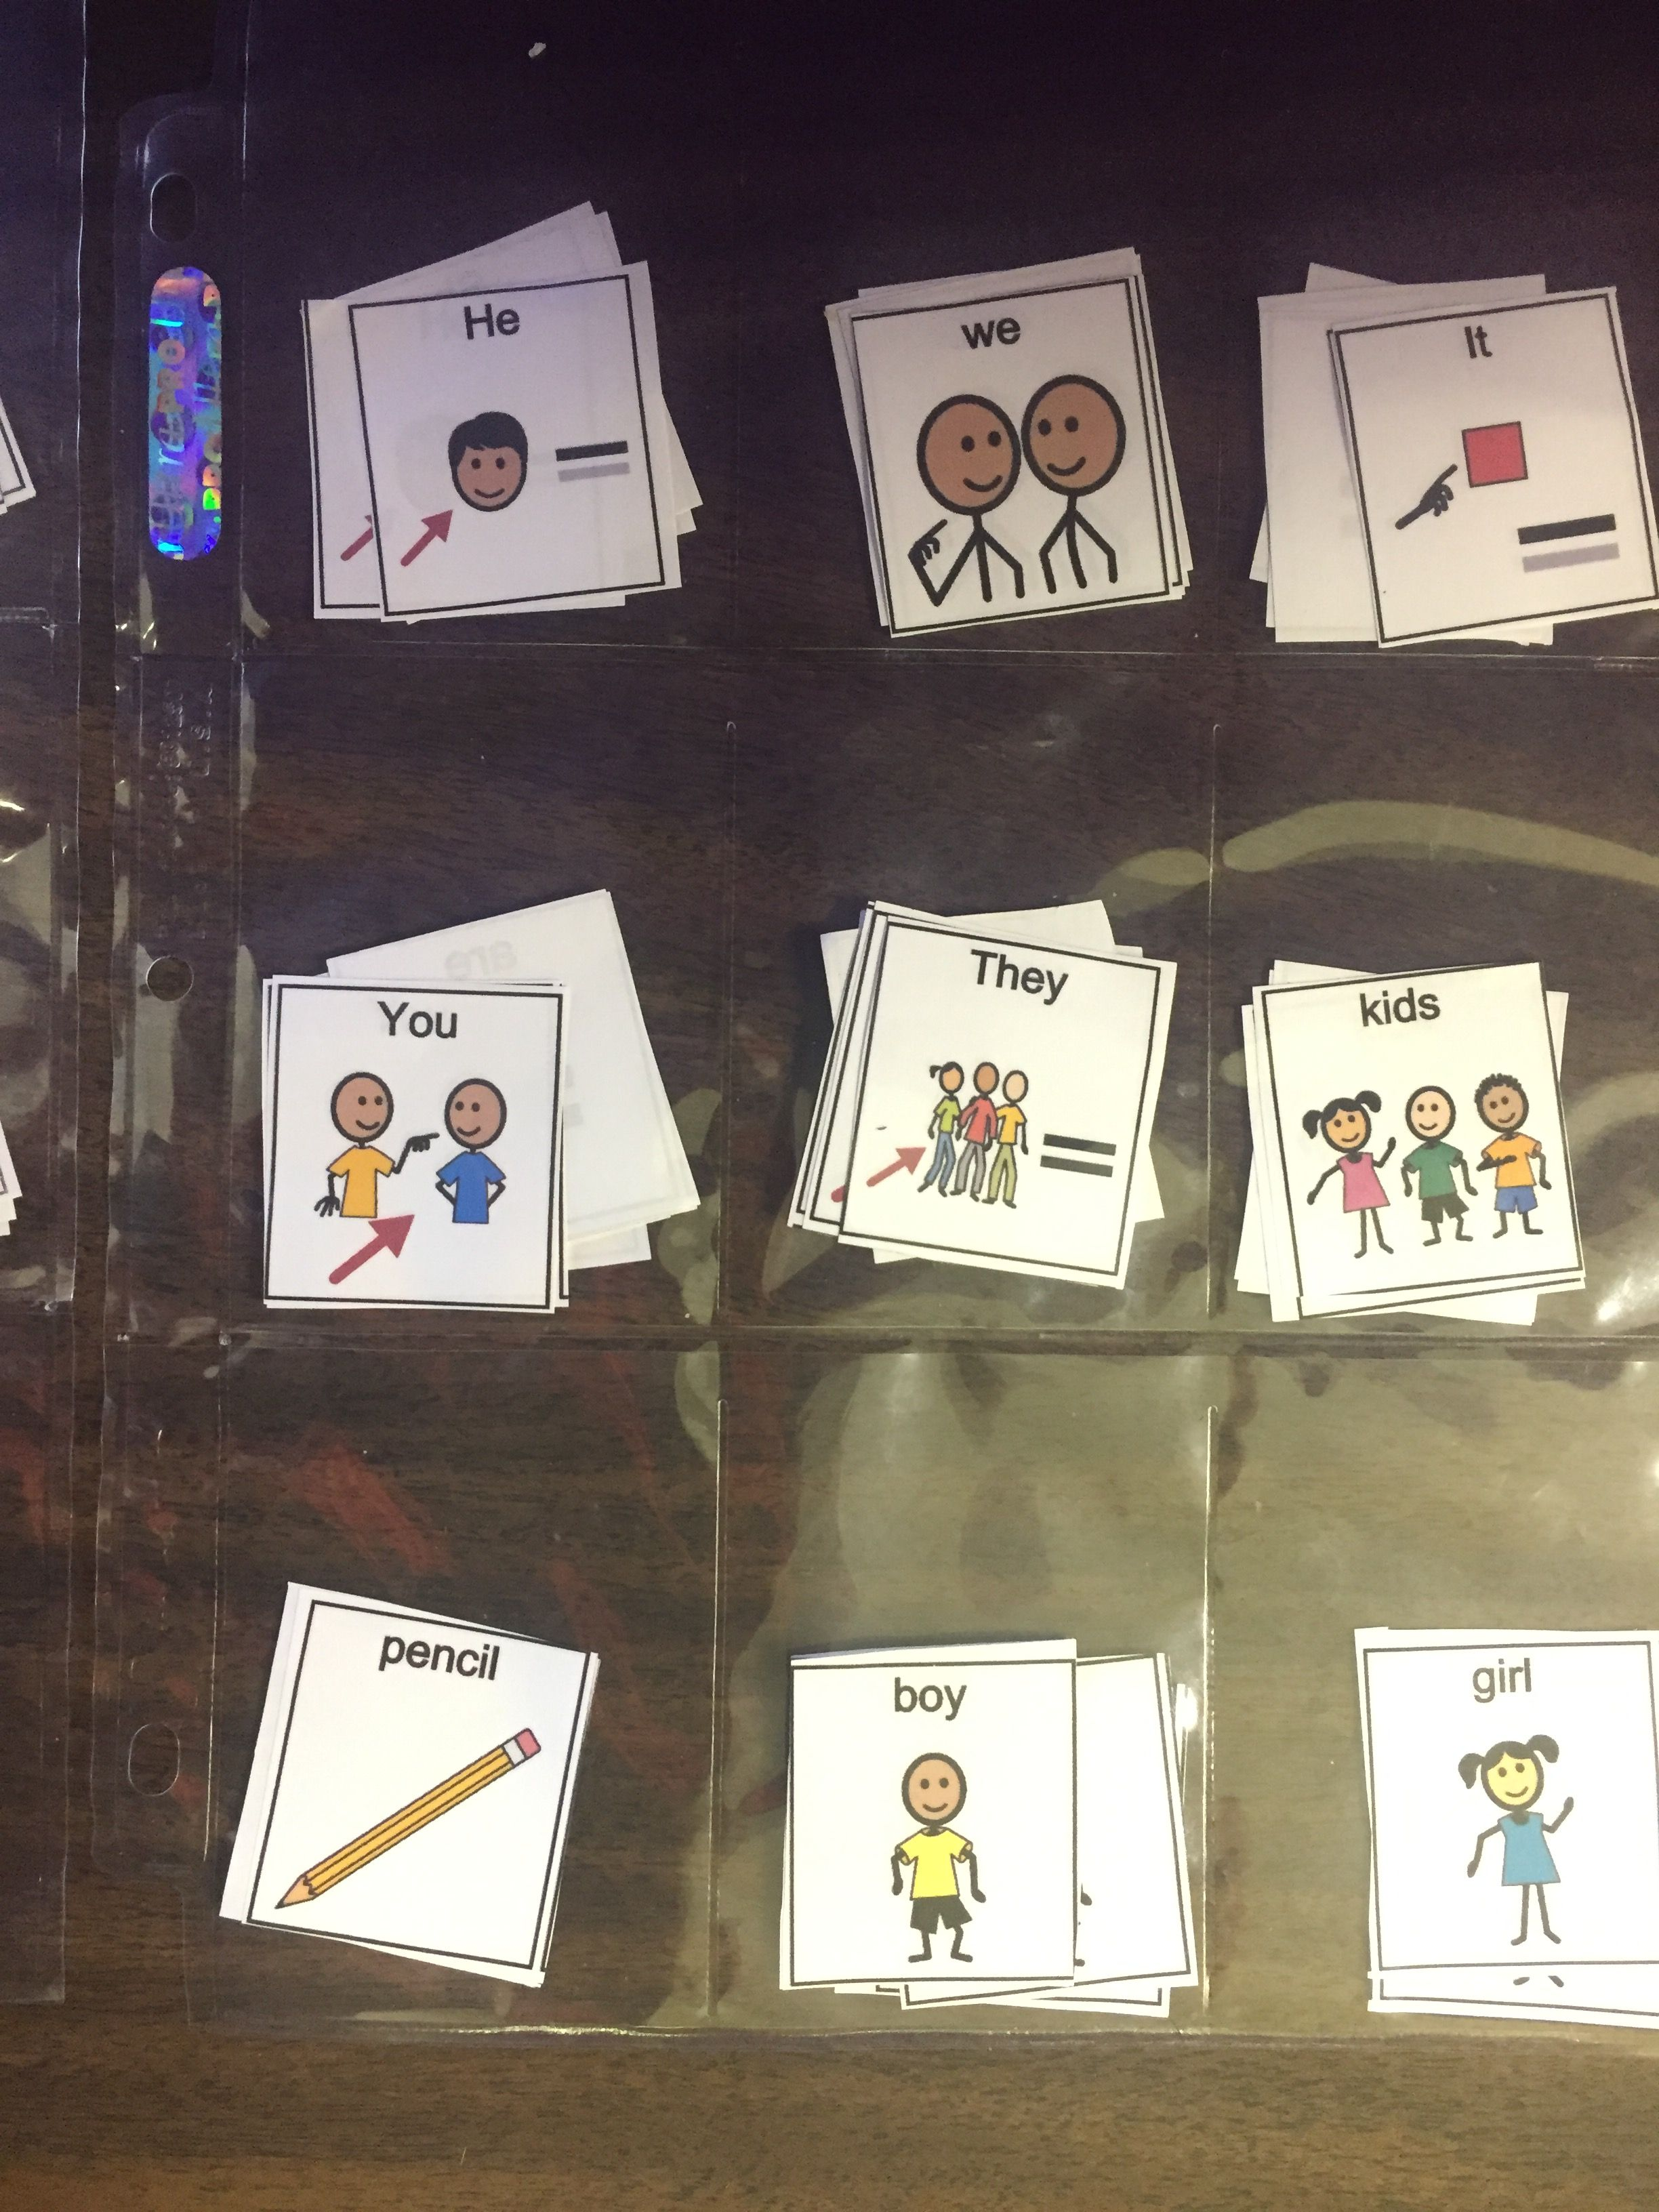 Use Baseball Card Holder Sheets To Organize Word Cards For